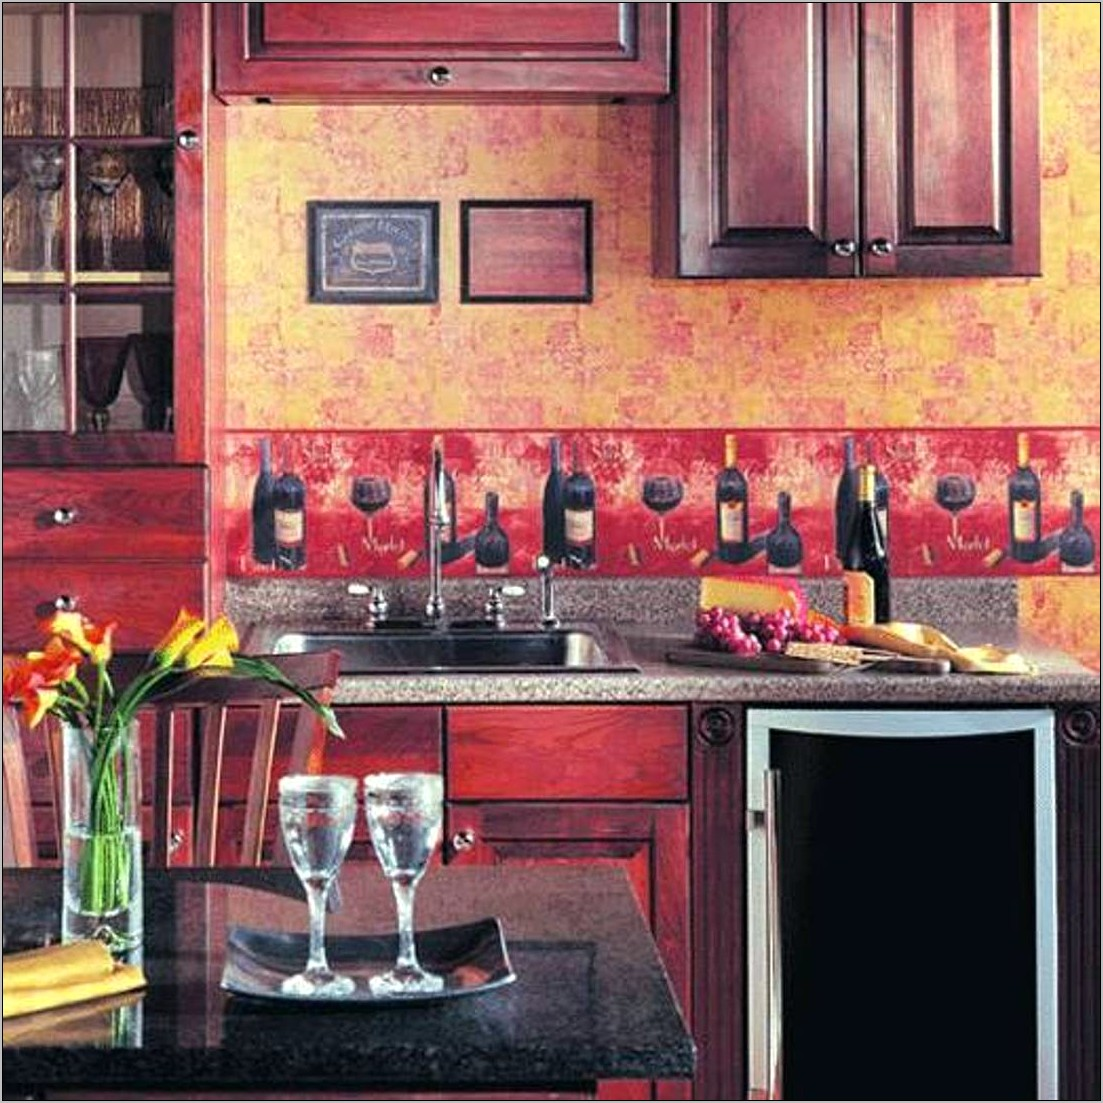 Pictures Of Kitchens Decorated With Borders